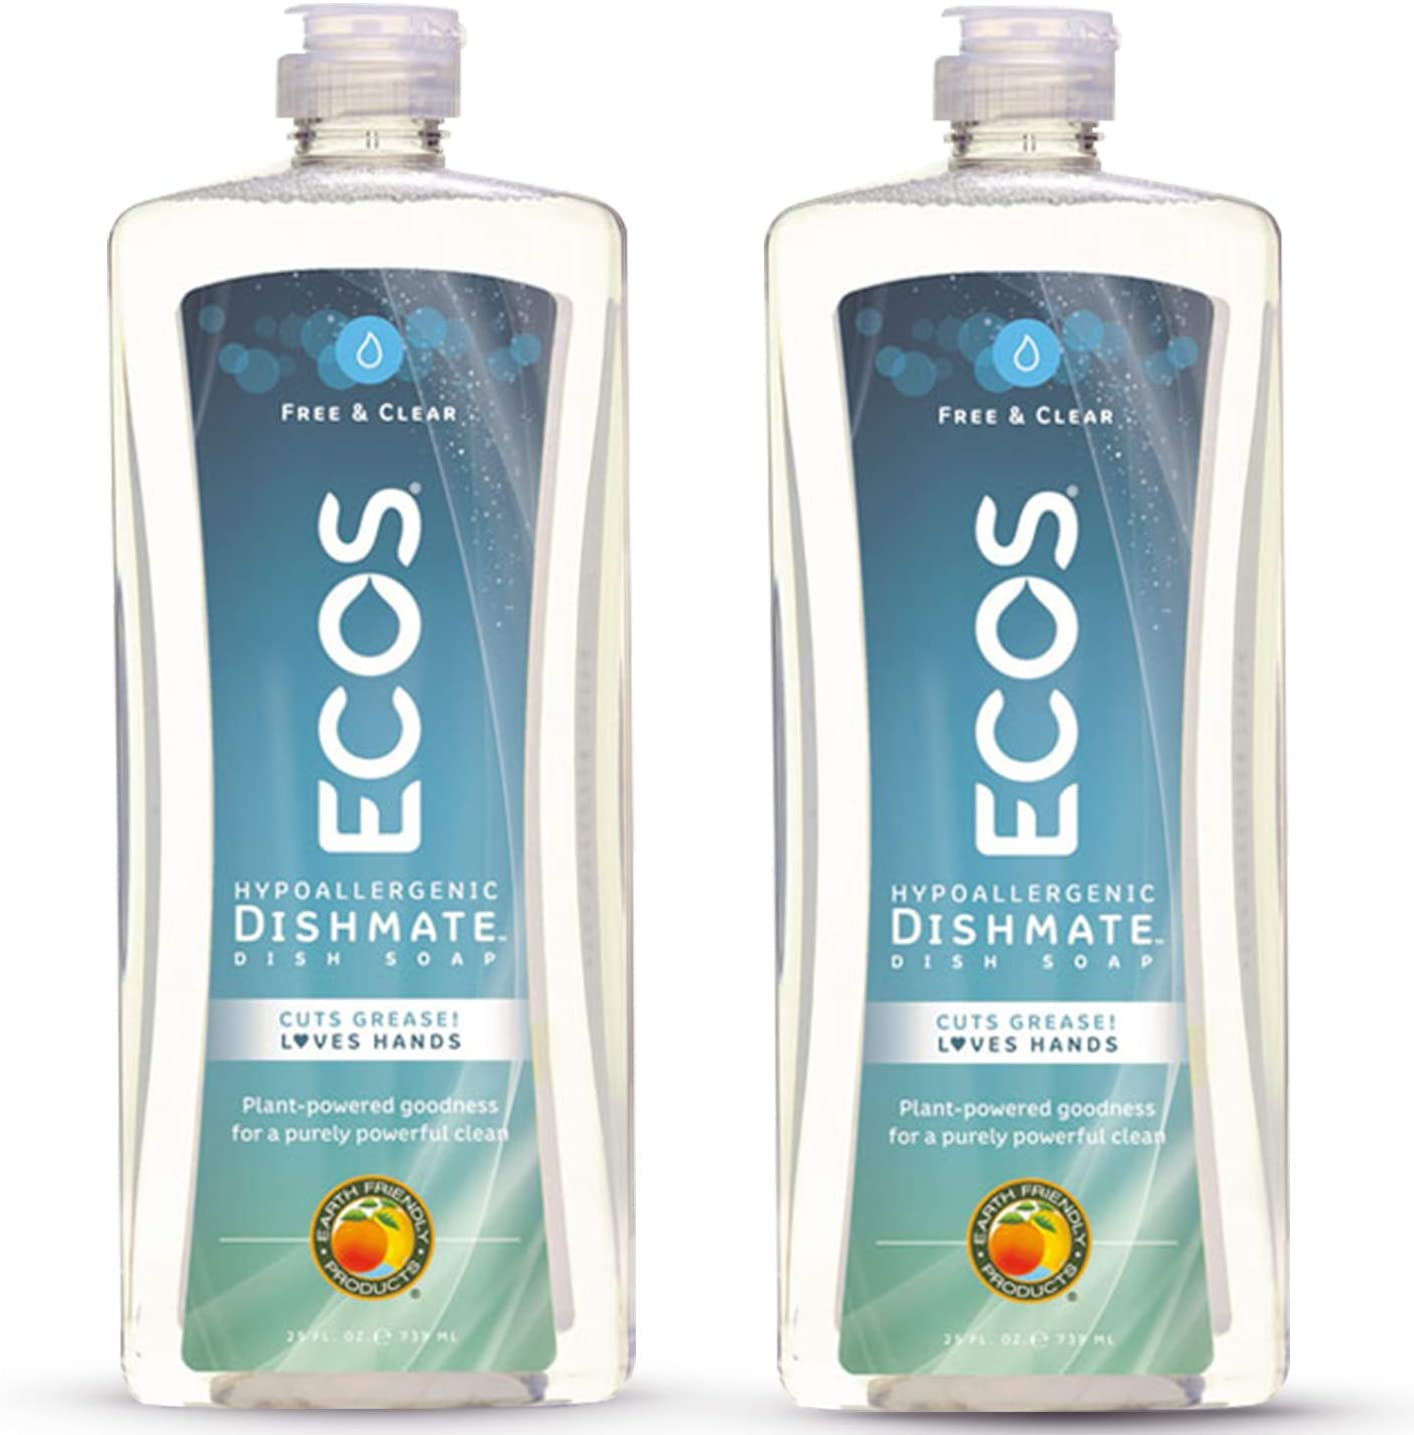 Earth Friendly Products ECOS Dishmate Hypoallergenic Dish Soap, Free & Clear, 25 oz Bottle (Pack of 2)